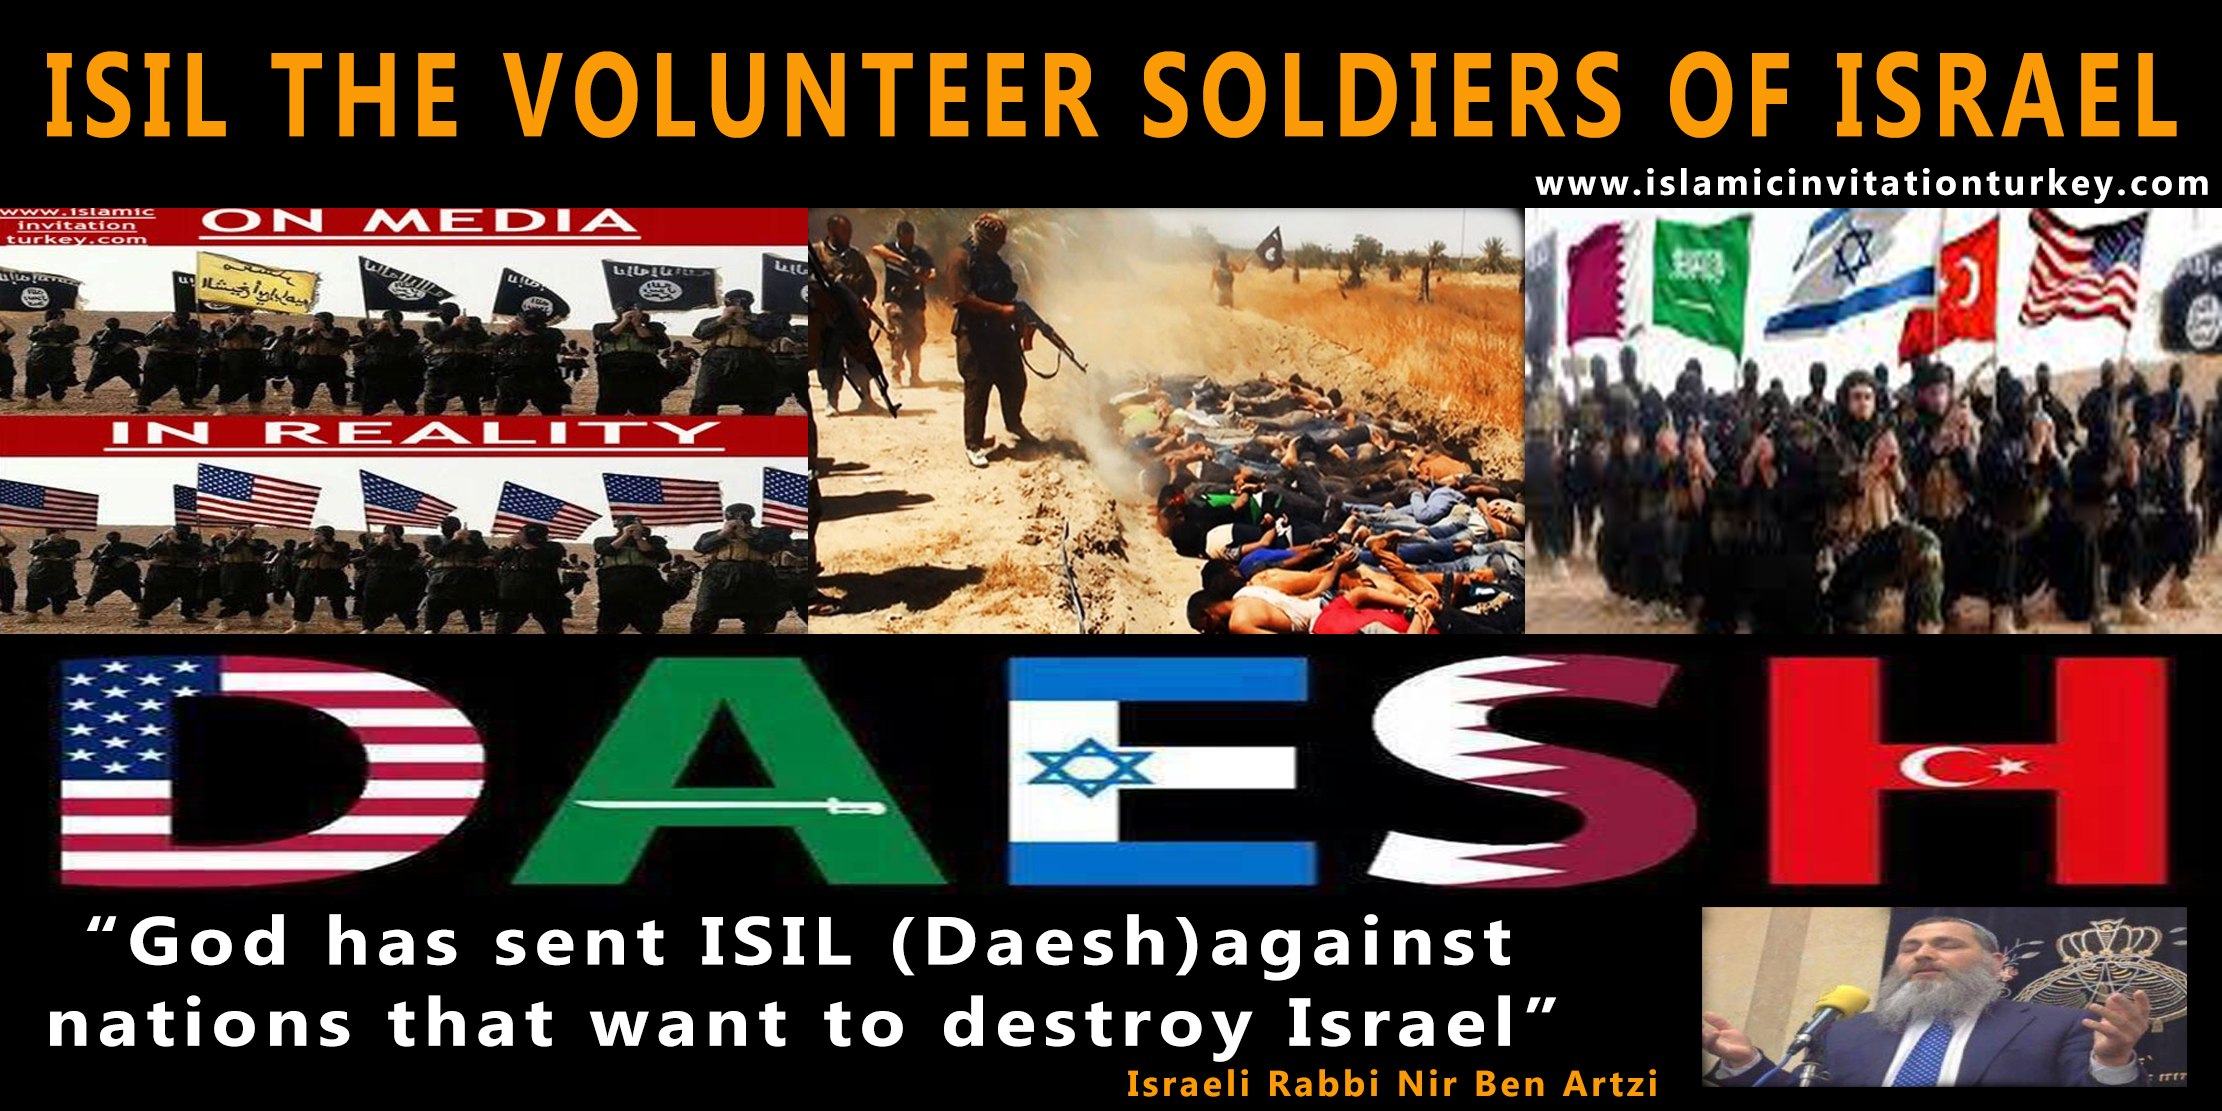 daesh and israel